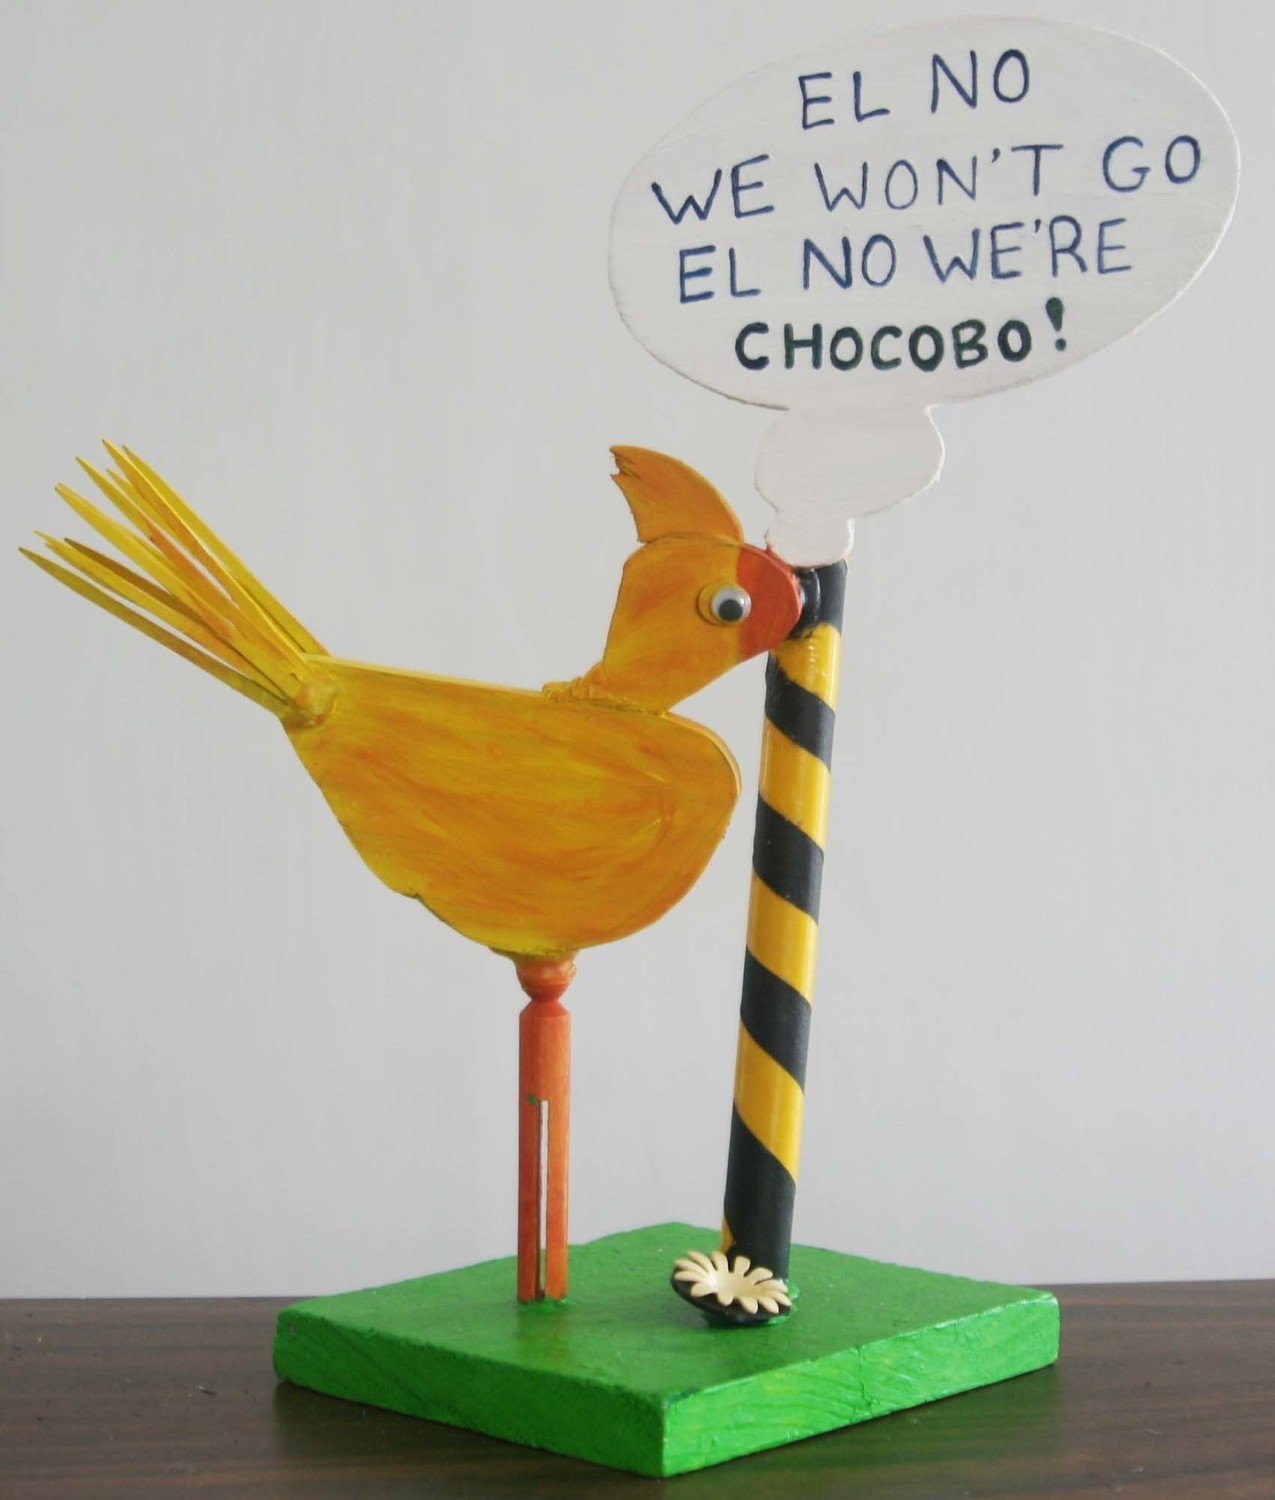 Chocobo Protest